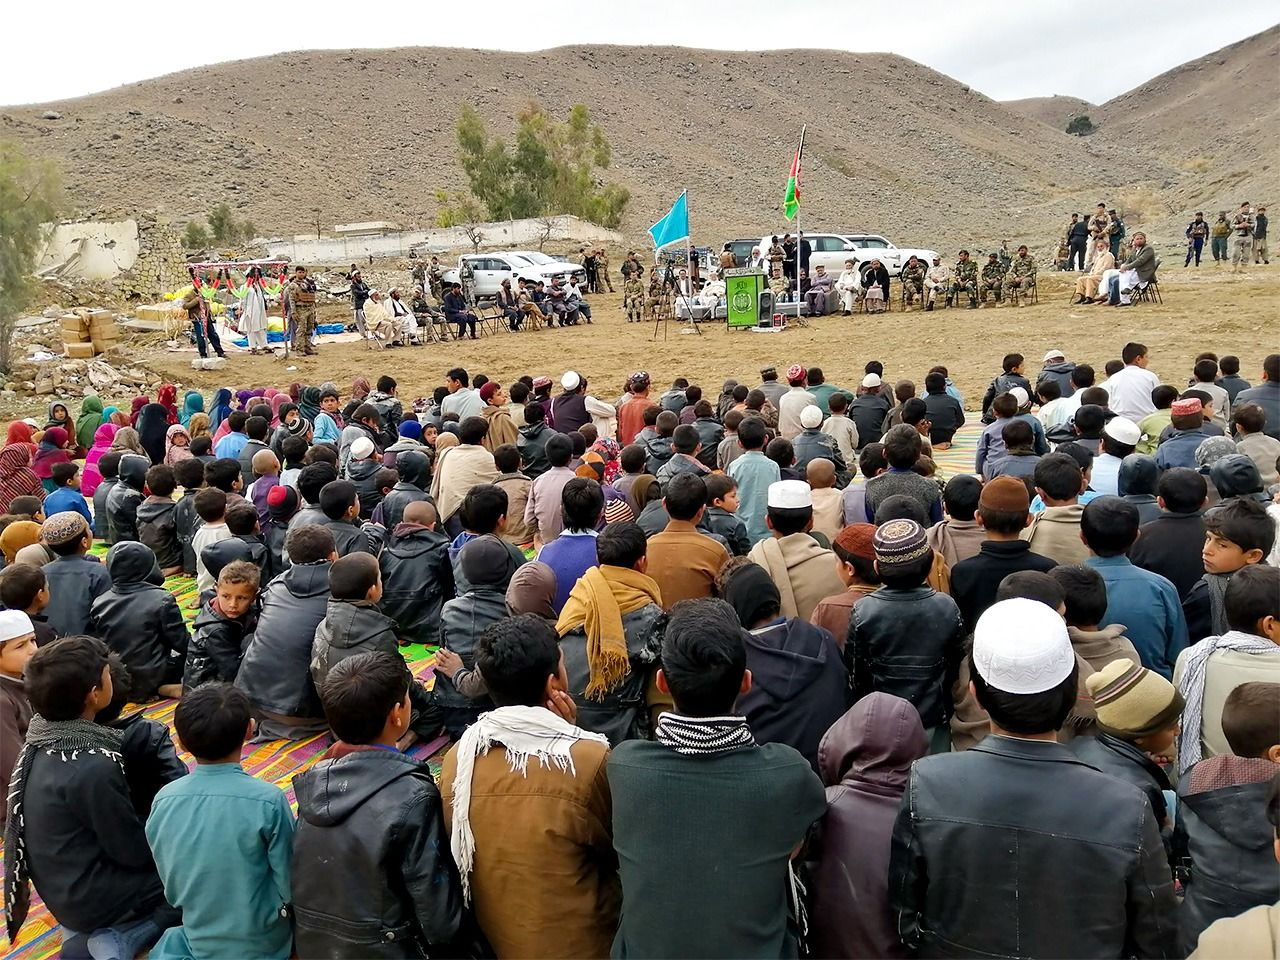 People gather for a ceremony to mark the reopening of the local school in March 2019. Army representatives can be seen to the right of the flagpole. (Photo courtesy Japanese Organization for International Cooperation in Family Planning)